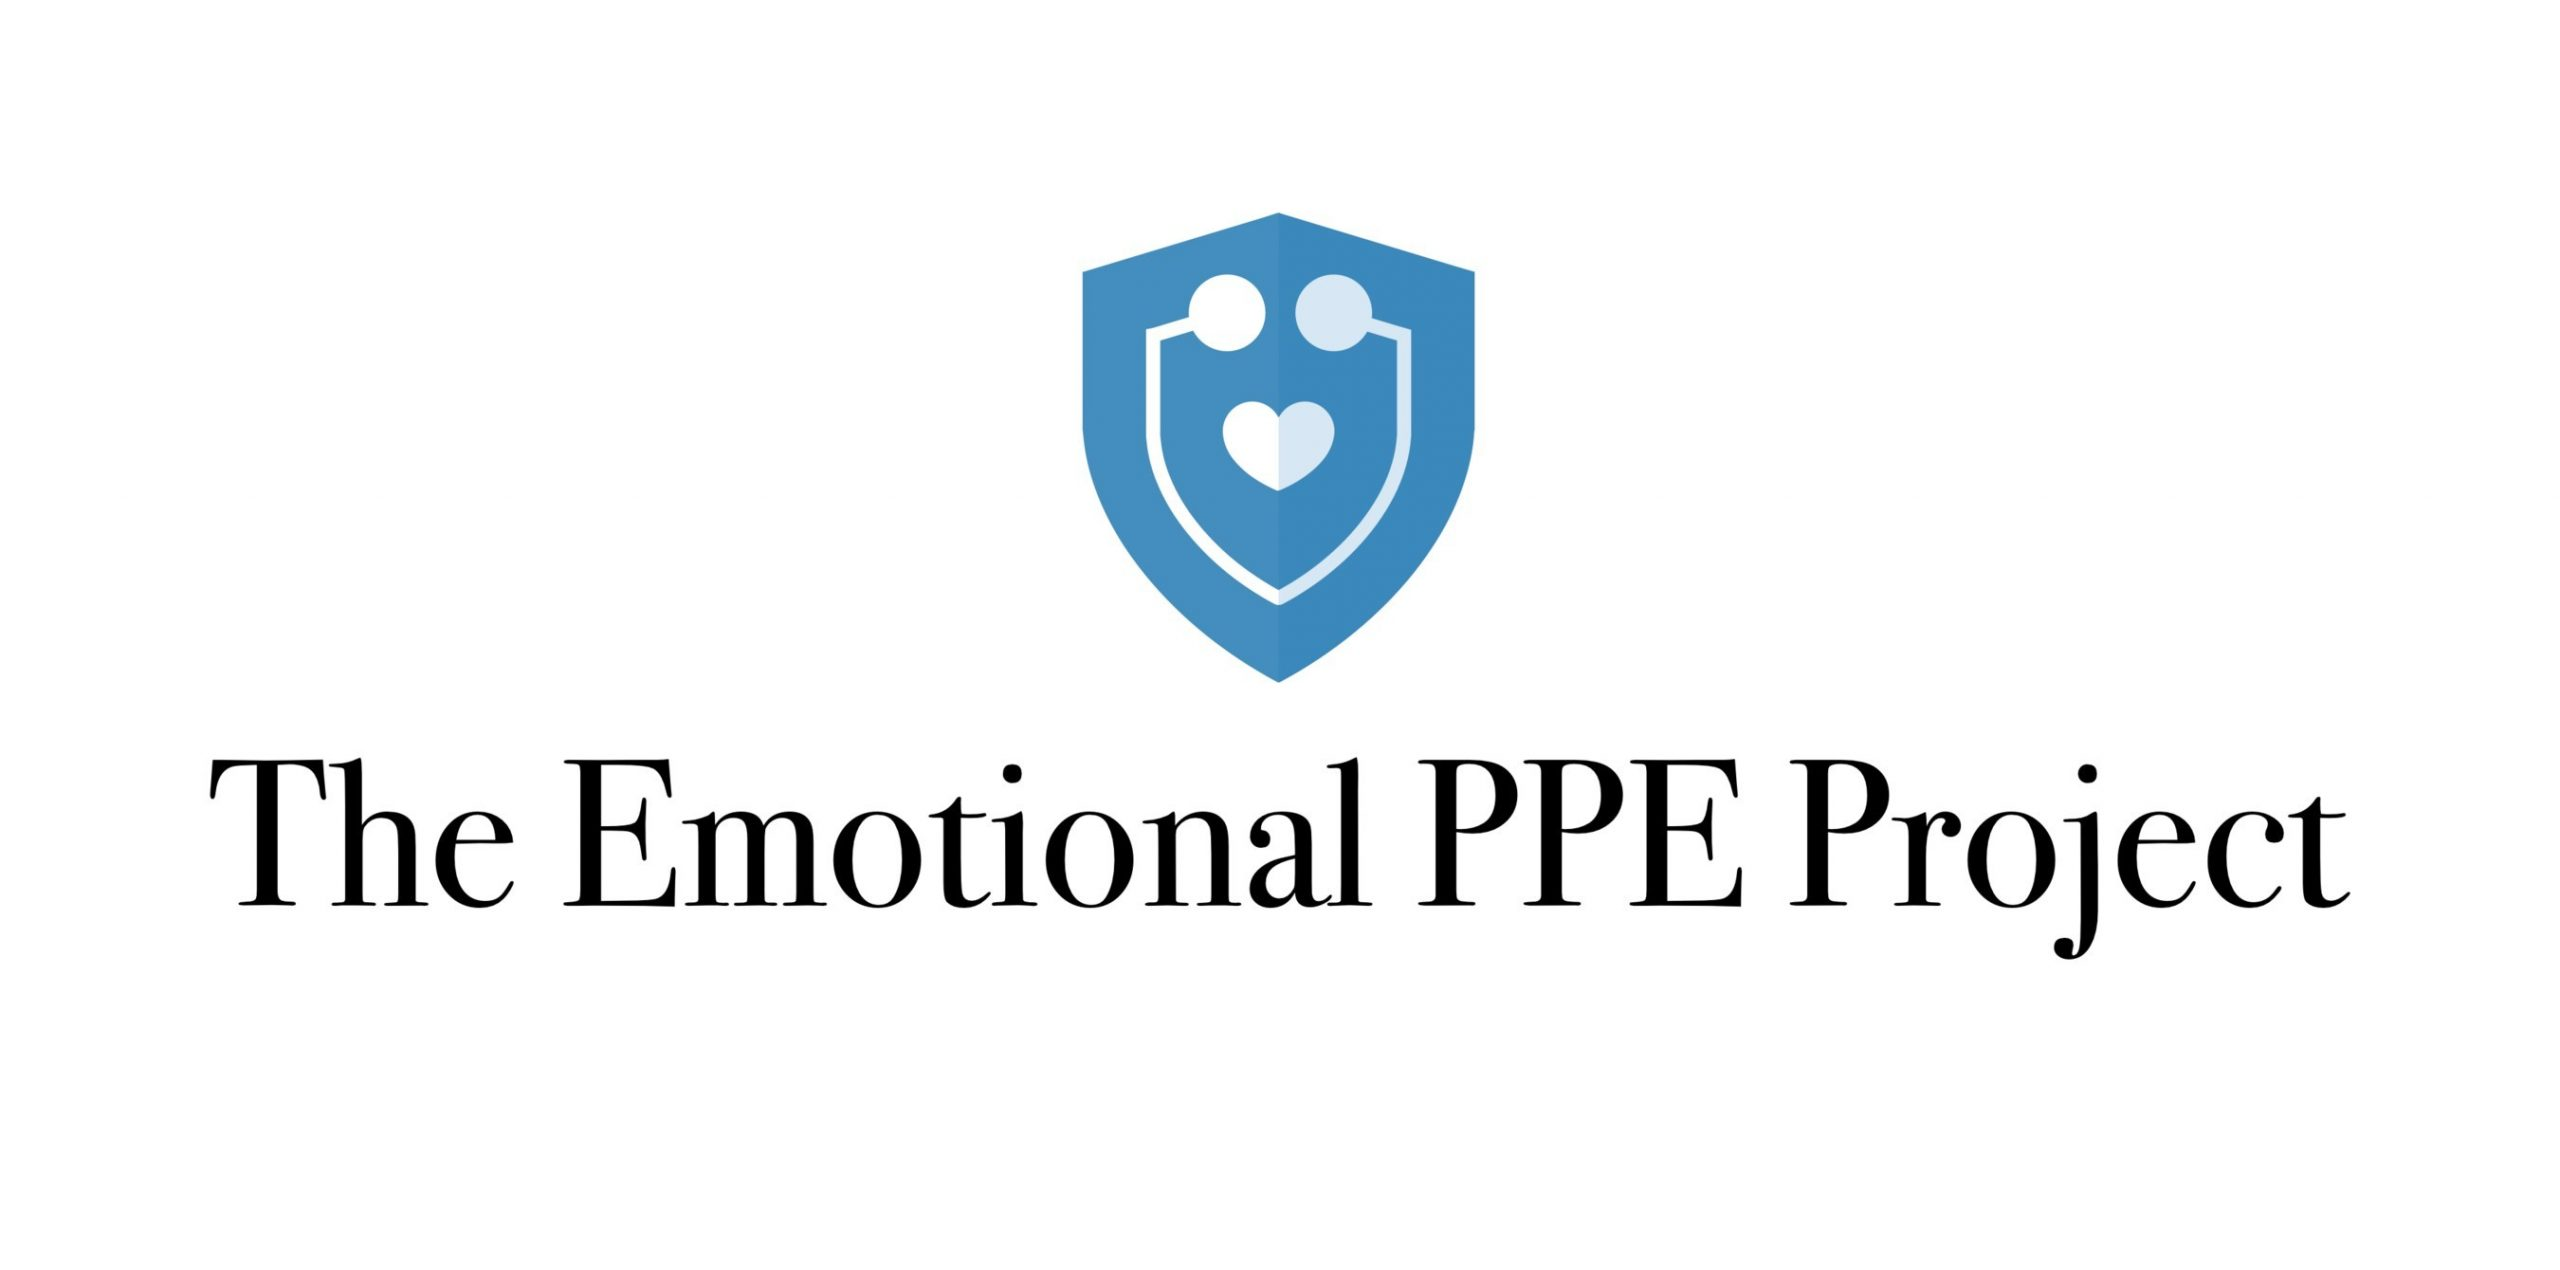 """White square with the text """"The Emotional PPE Project"""" in the center."""